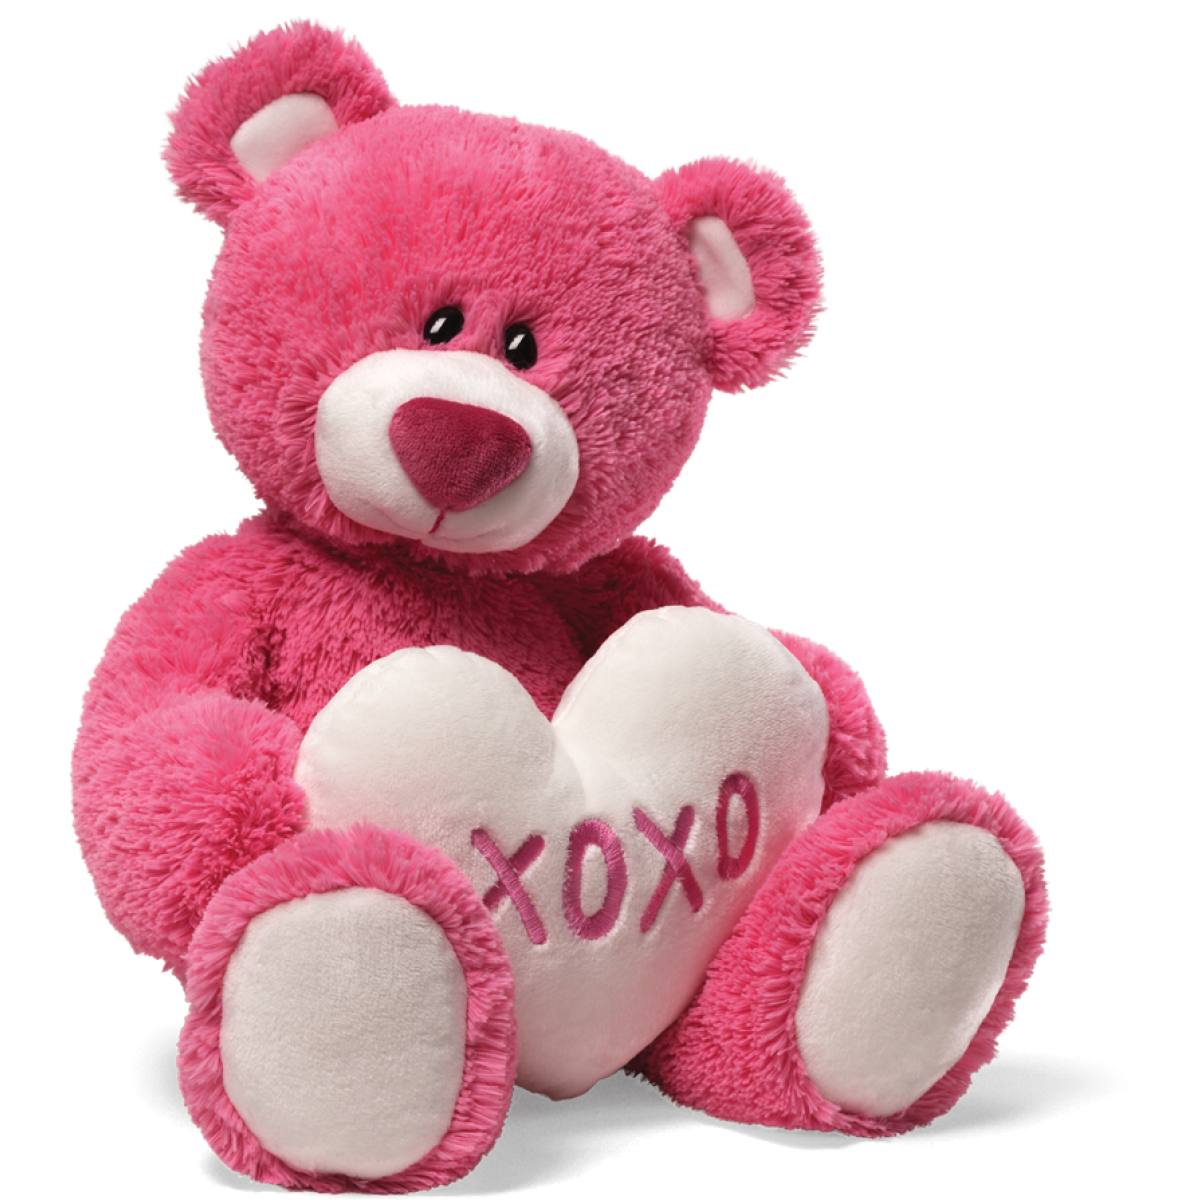 Teddy Bear Png Hd PNG Image - Toy Bear PNG